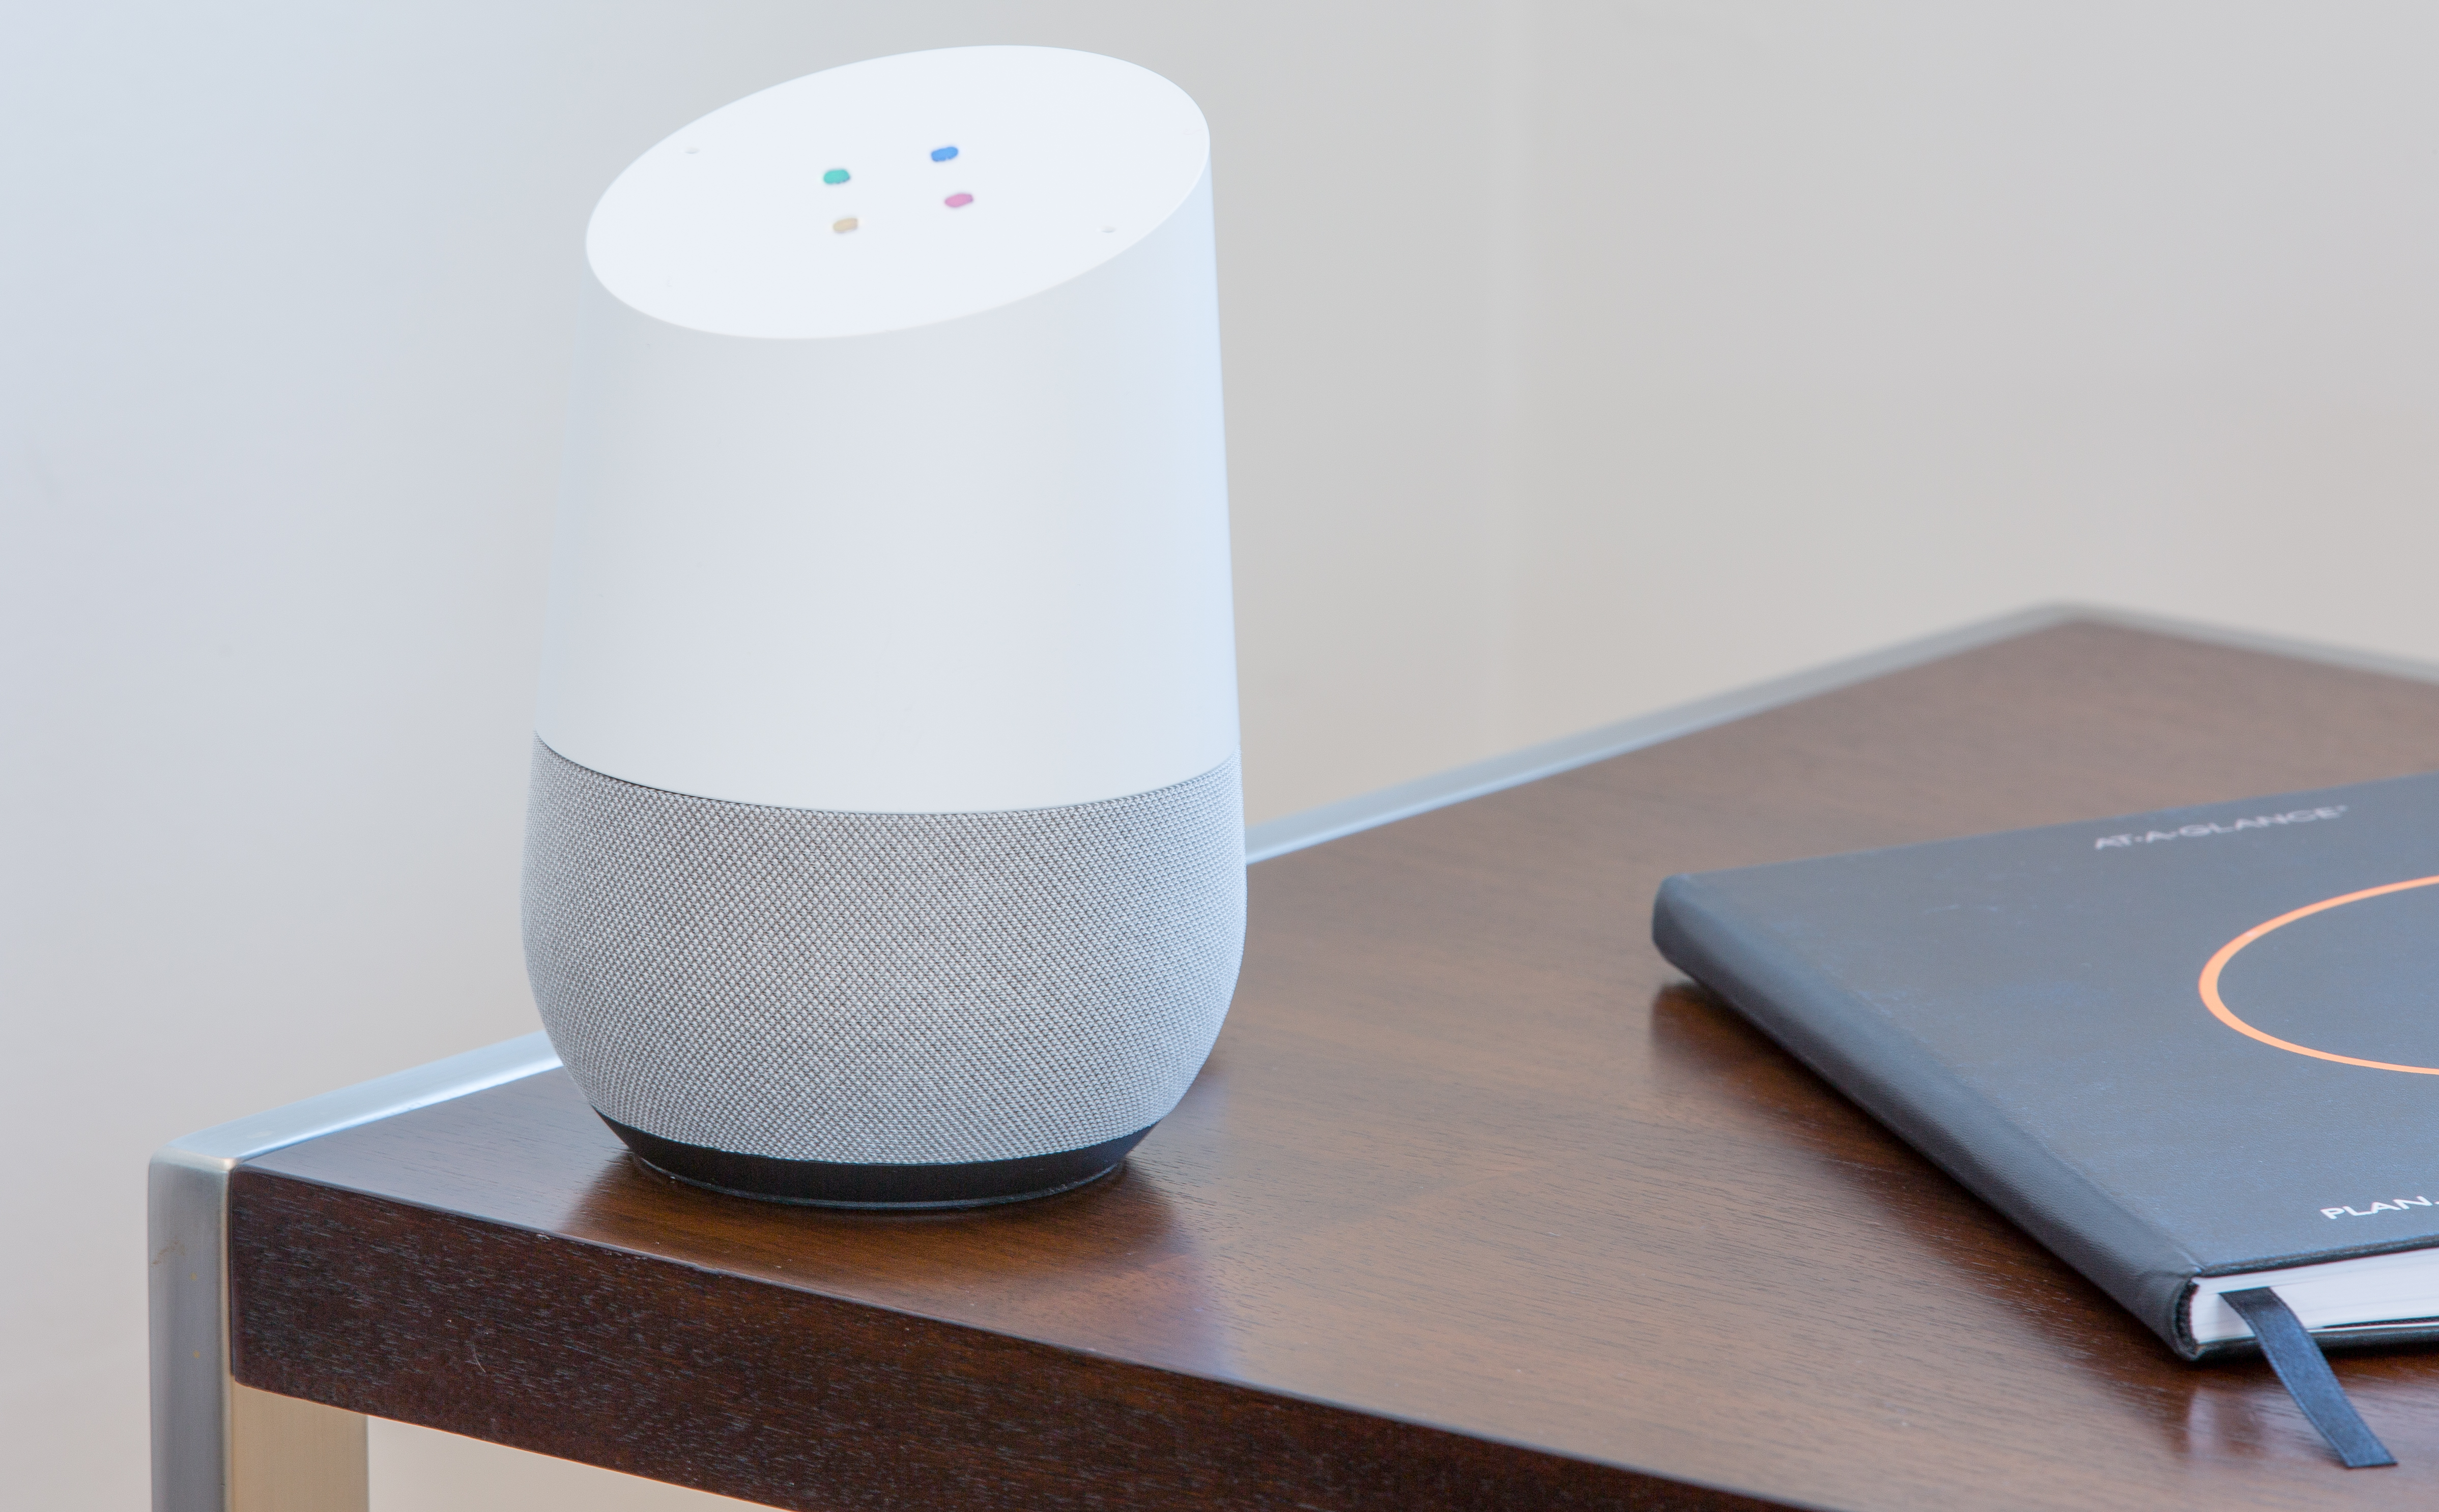 Journalism on Smart Speakers: key findings from the Reuters Institute research